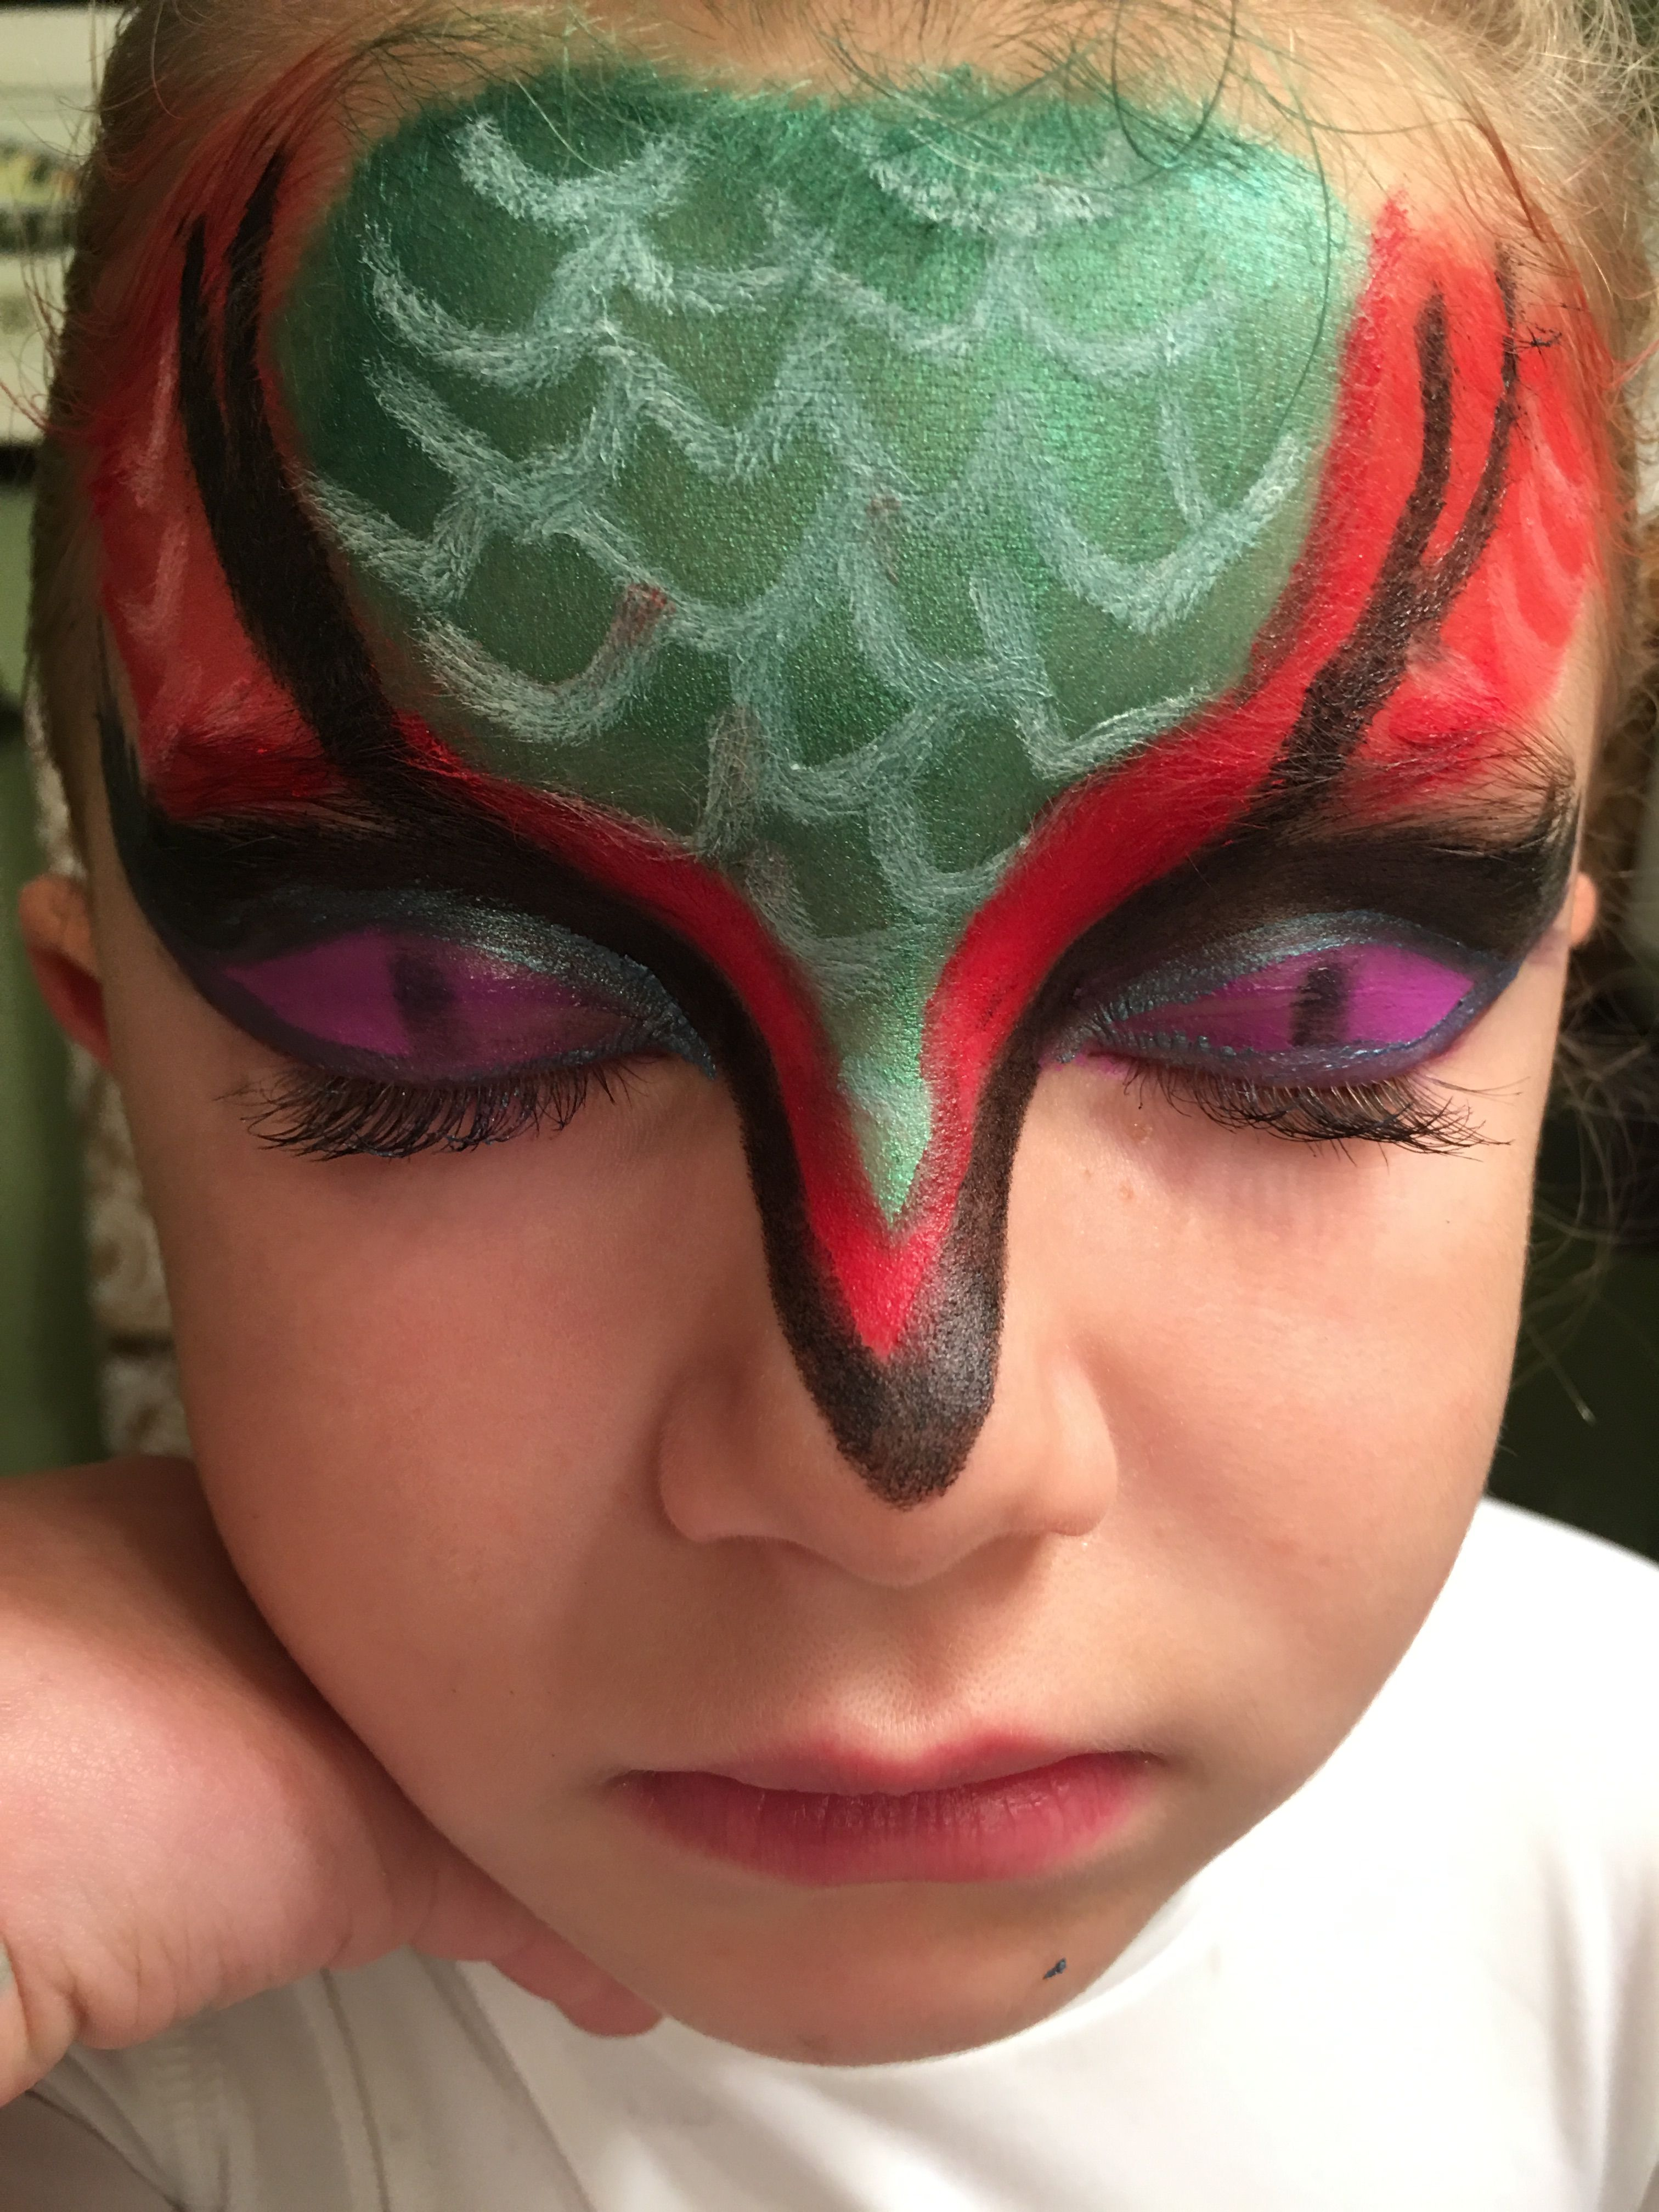 dragon face makeup (With images) Little girl hairstyles